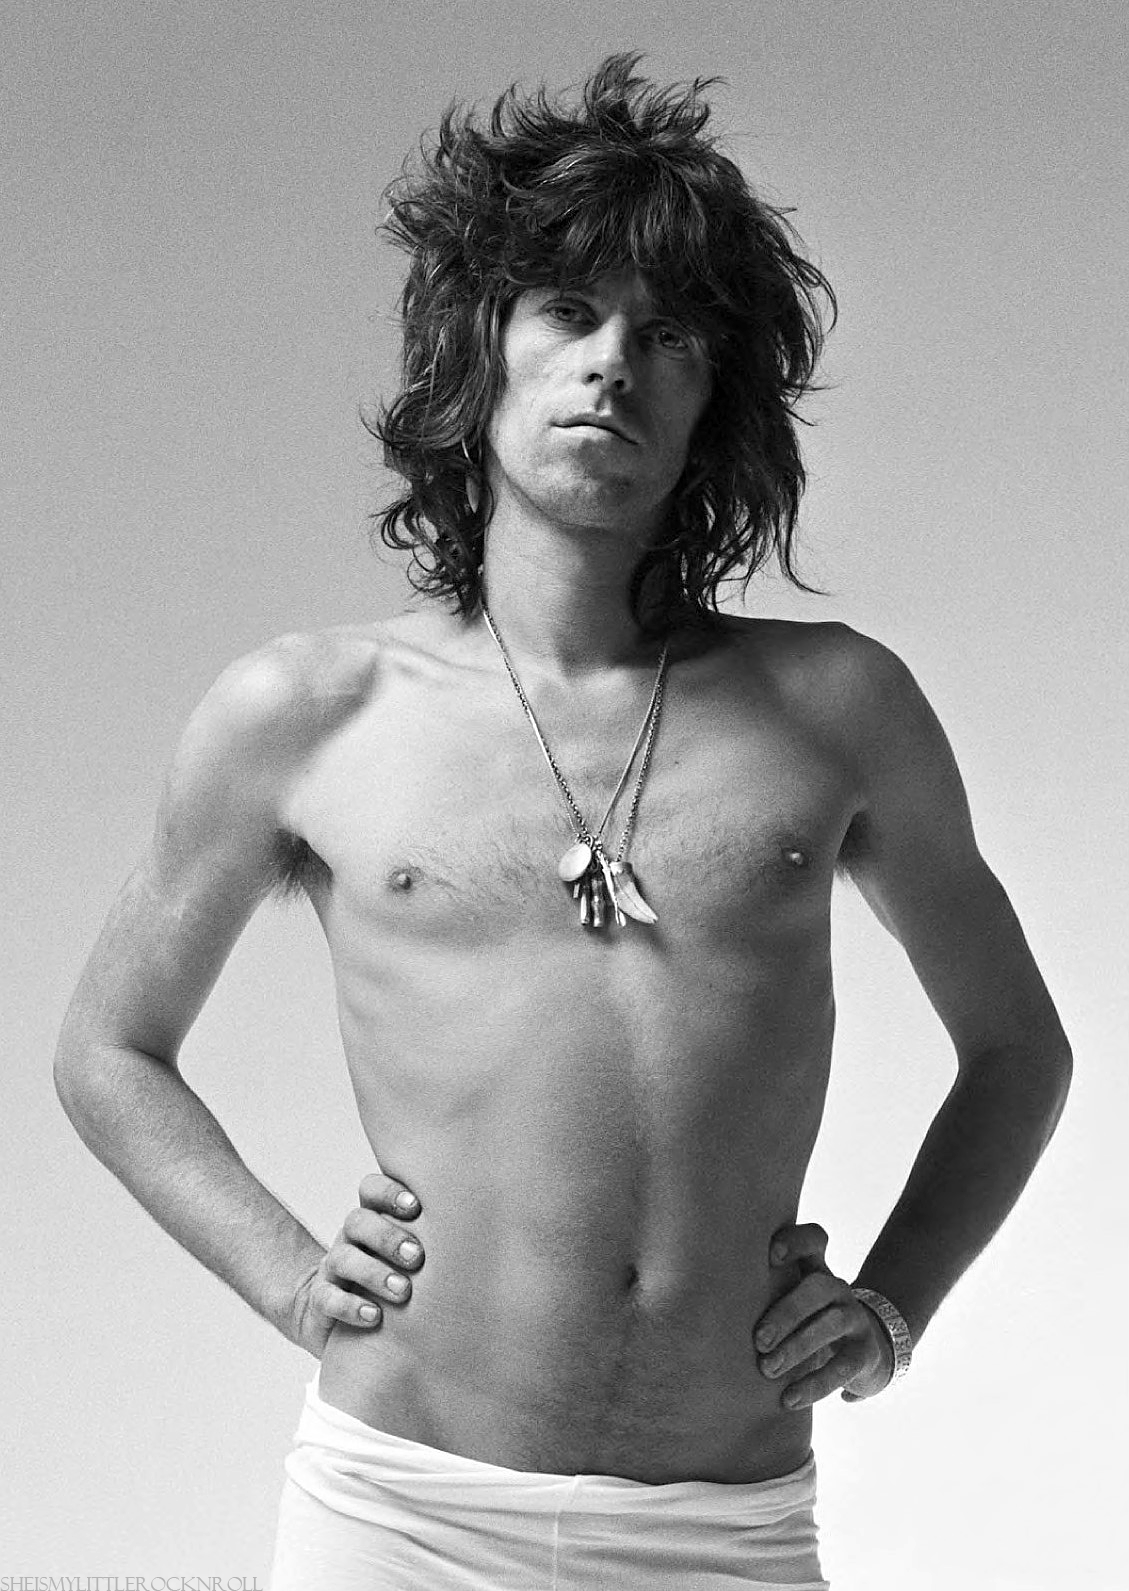 Keith Richards Tumblr Keith Richards Keith Richards Young Rolling Stones